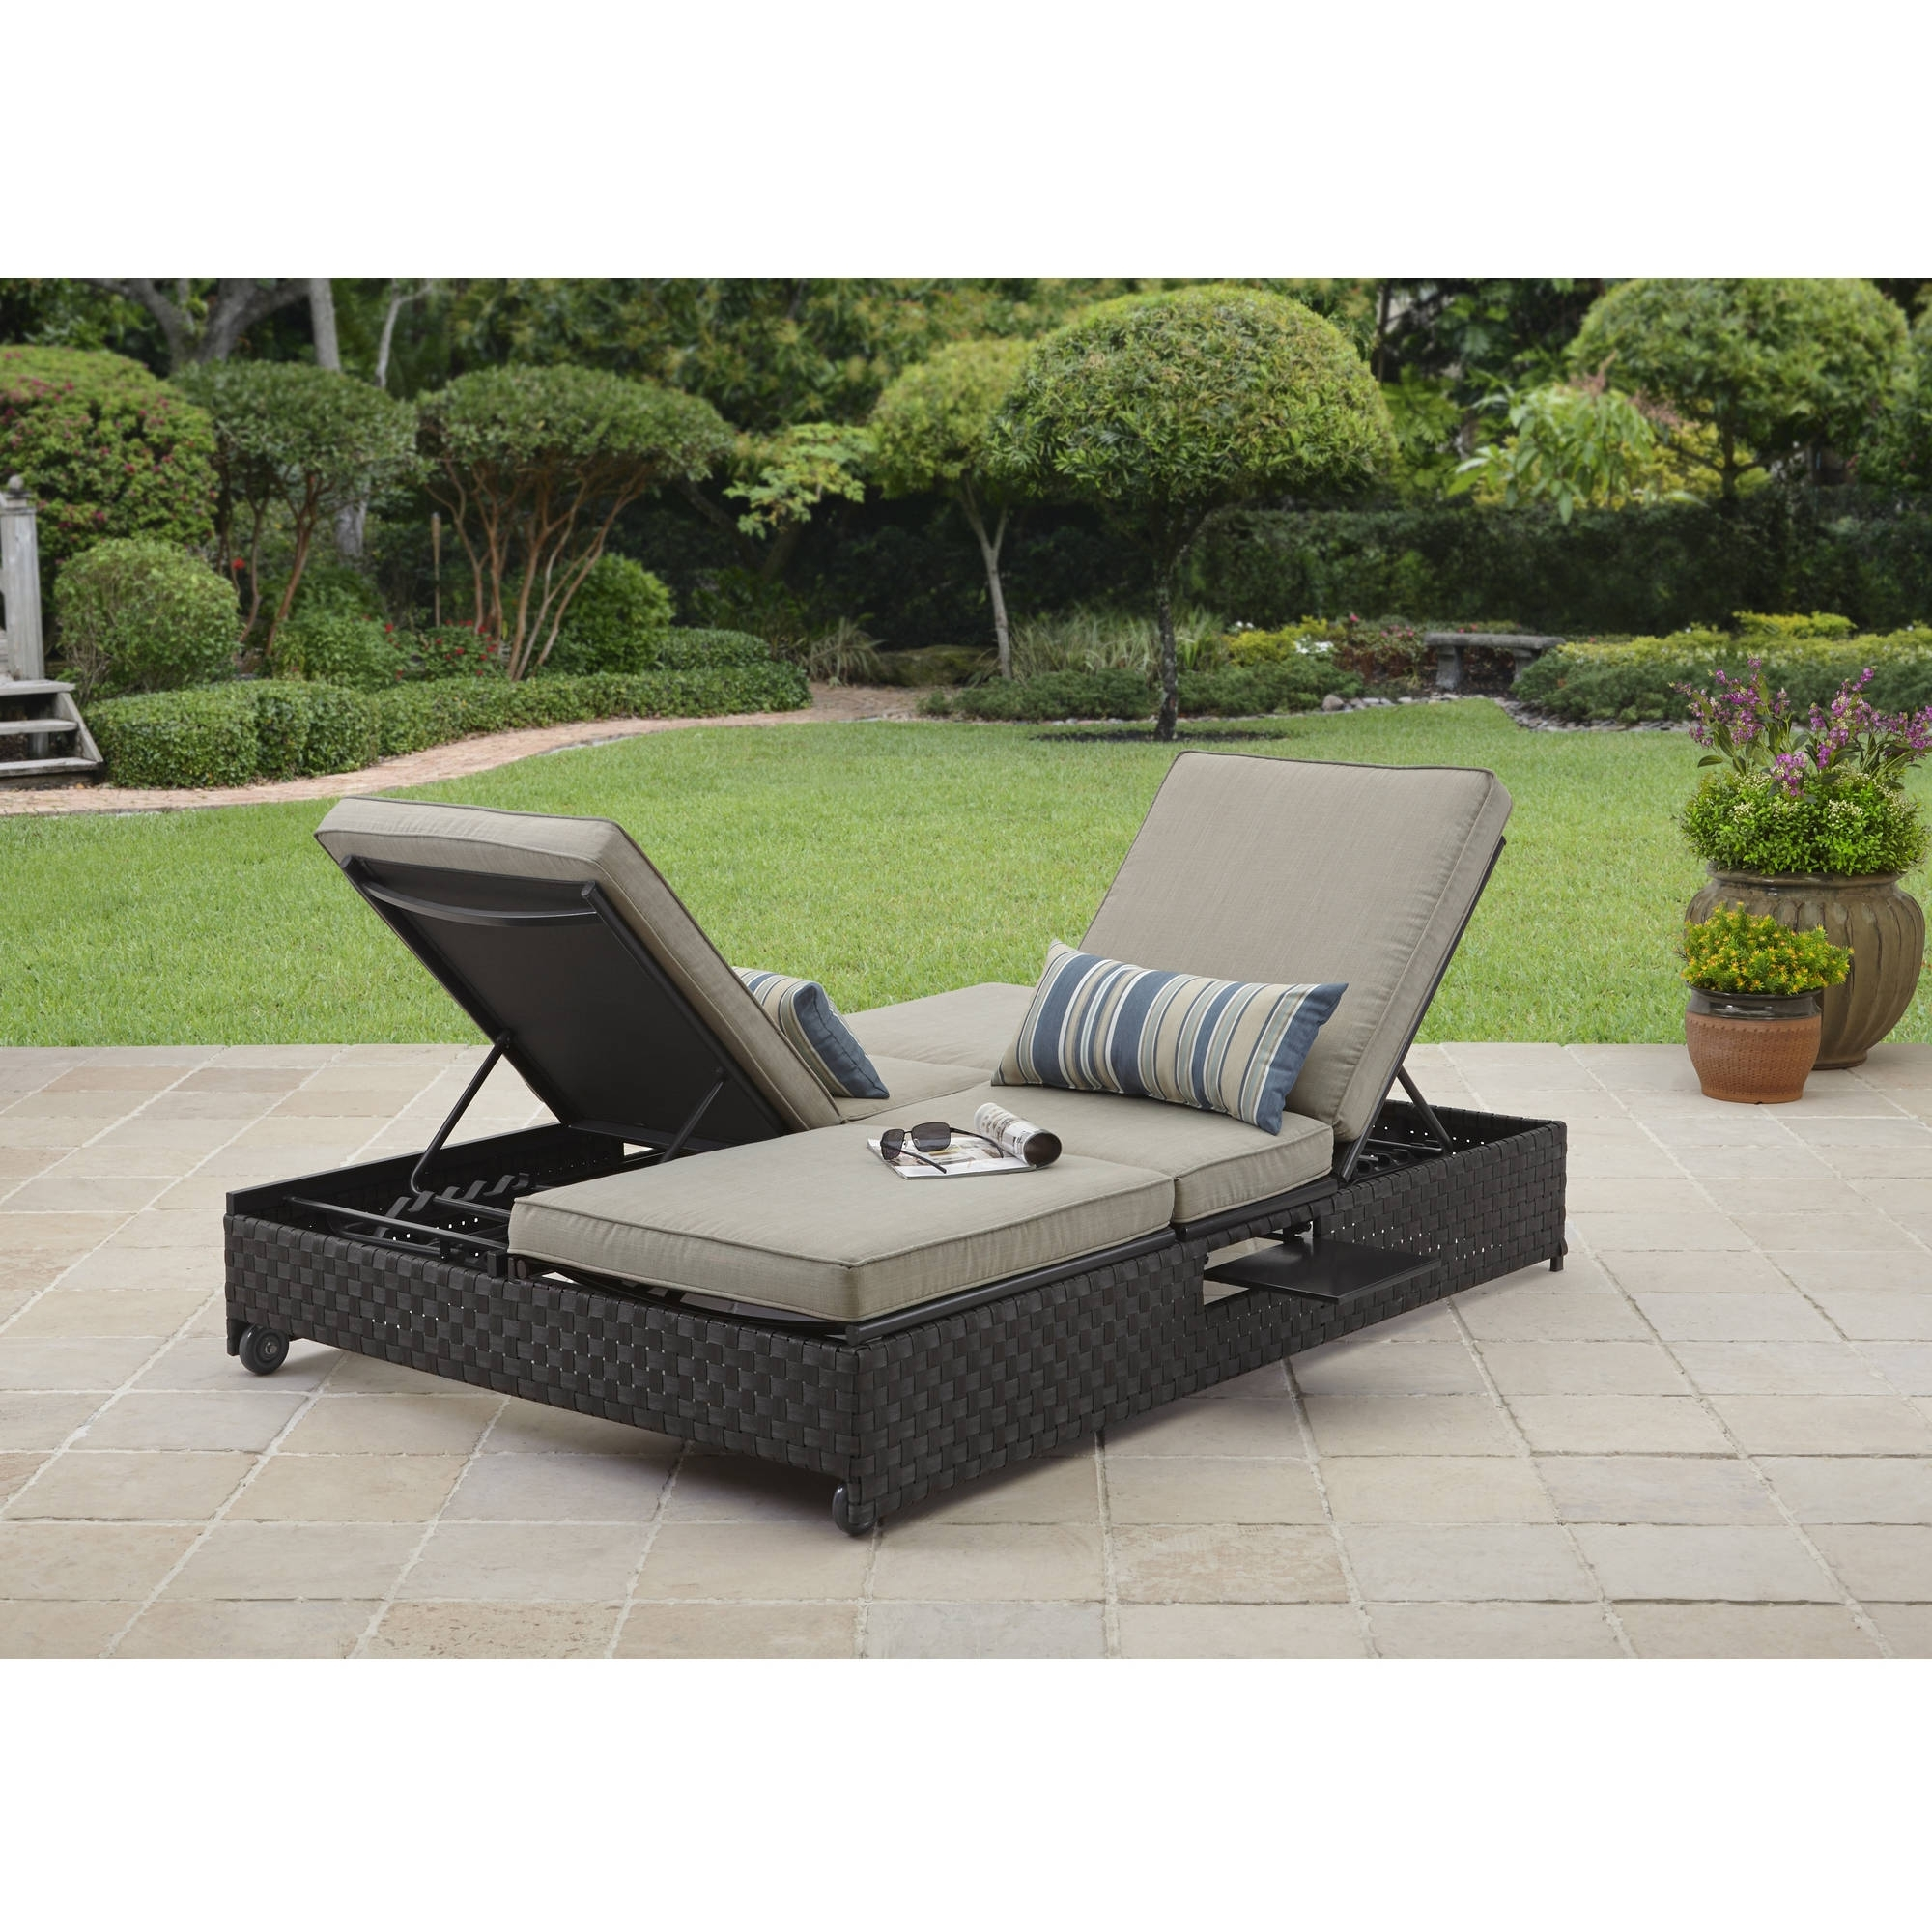 Walmart Outdoor Chaise Lounges In Popular Better Homes And Gardens Avila Beach Double Lounger/sofa – Walmart (View 11 of 15)